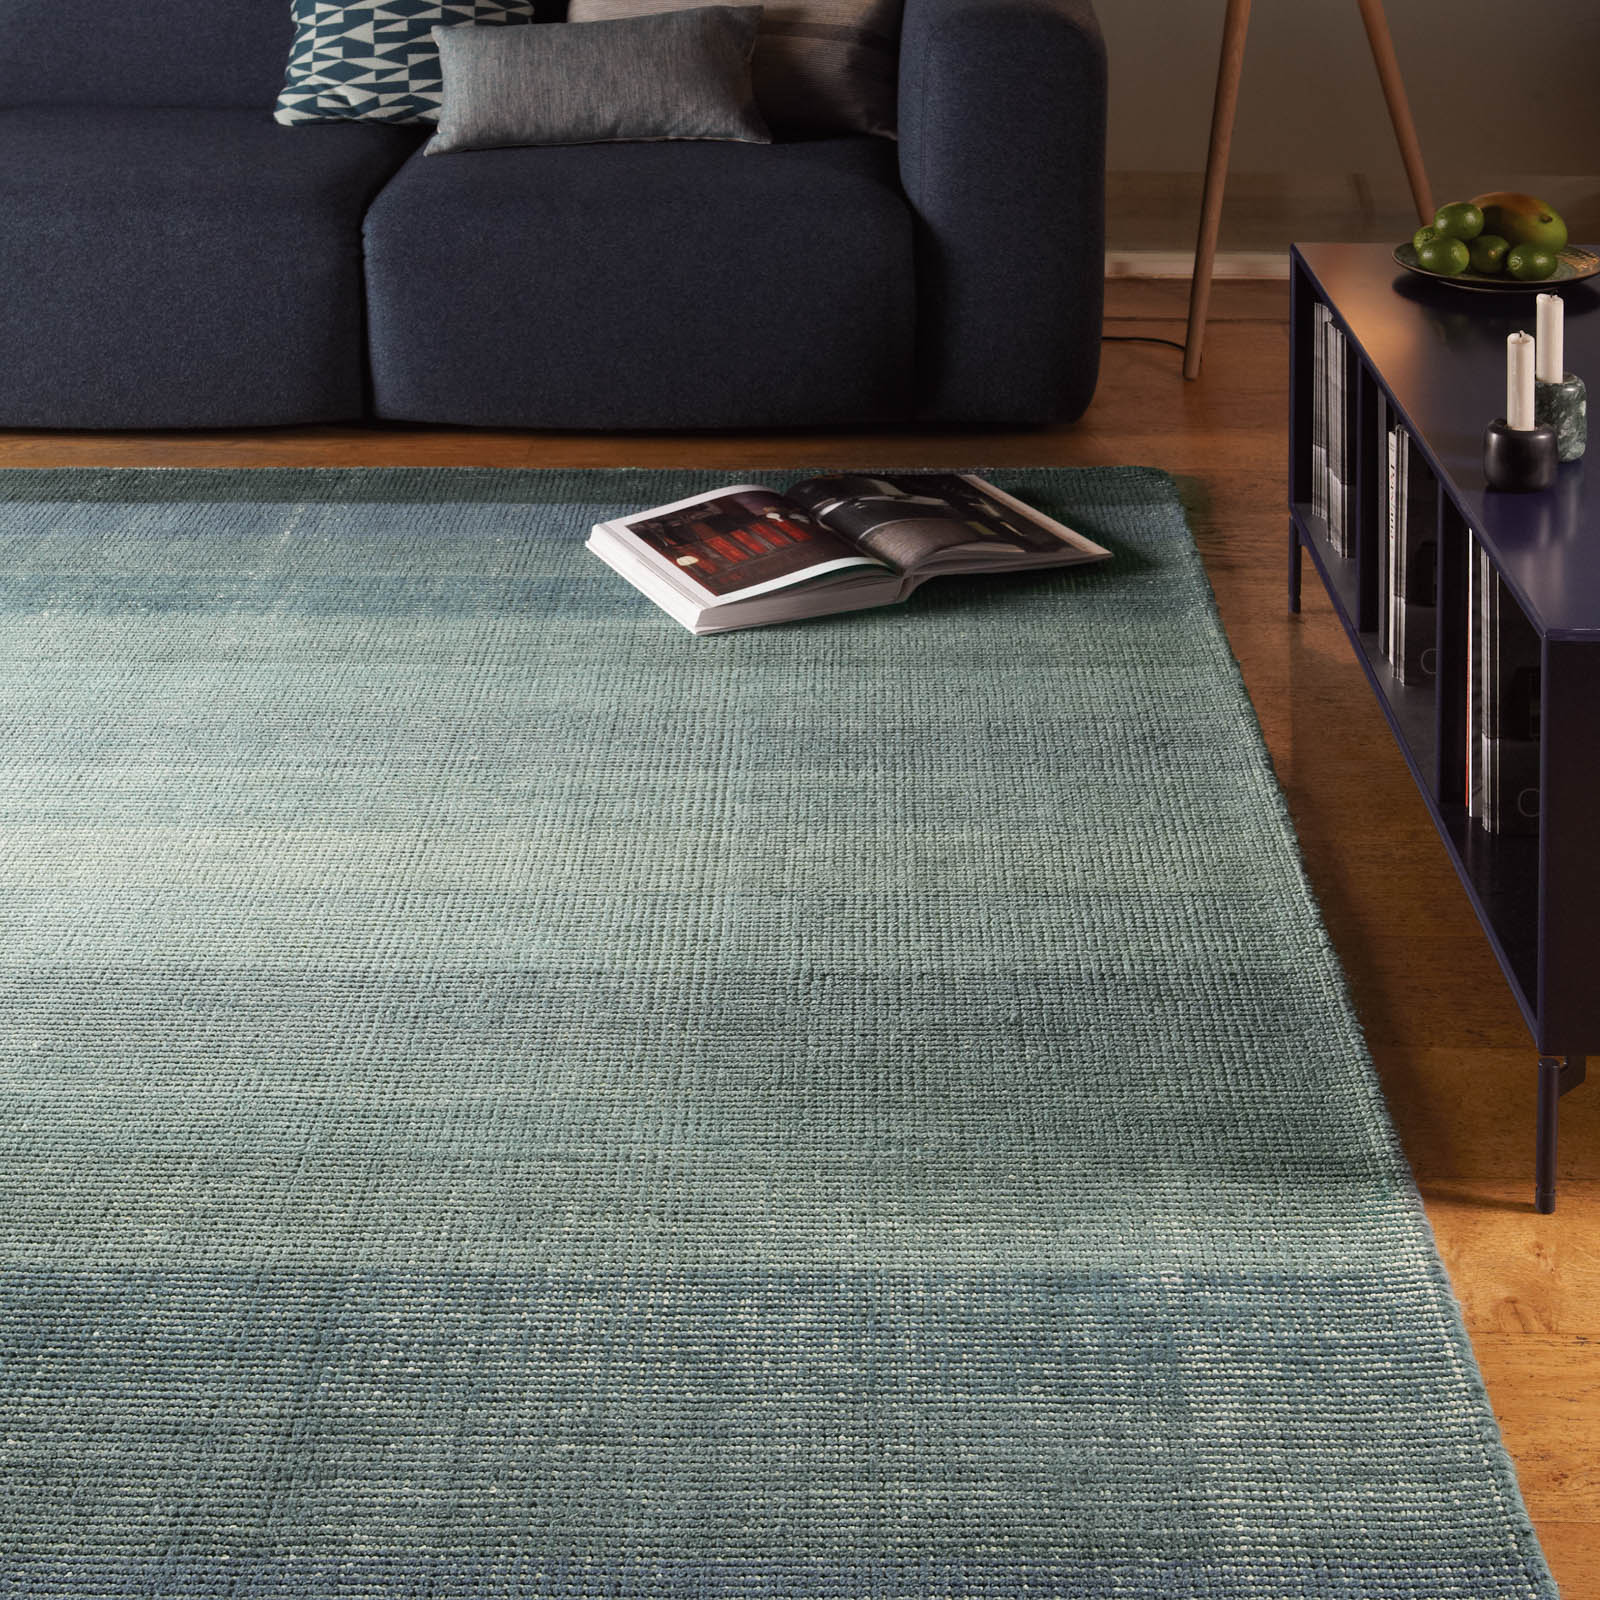 Large Washable Rugs Uk: Hays Rugs With Free UK Delivery From The Rug Seller UK